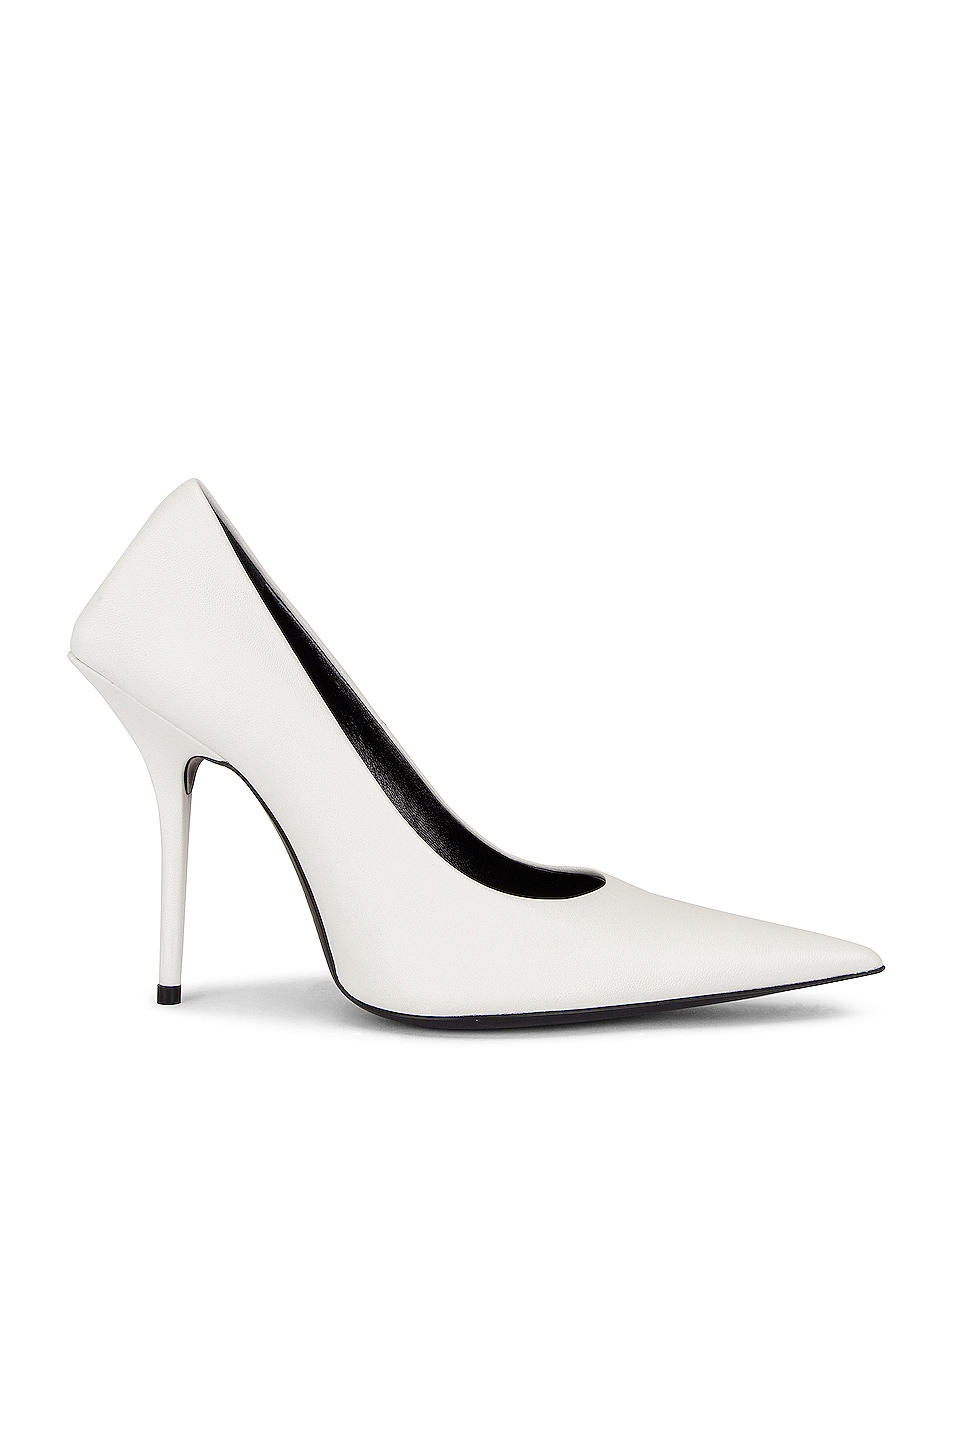 Image 1 of Balenciaga Square Knife Pumps in White